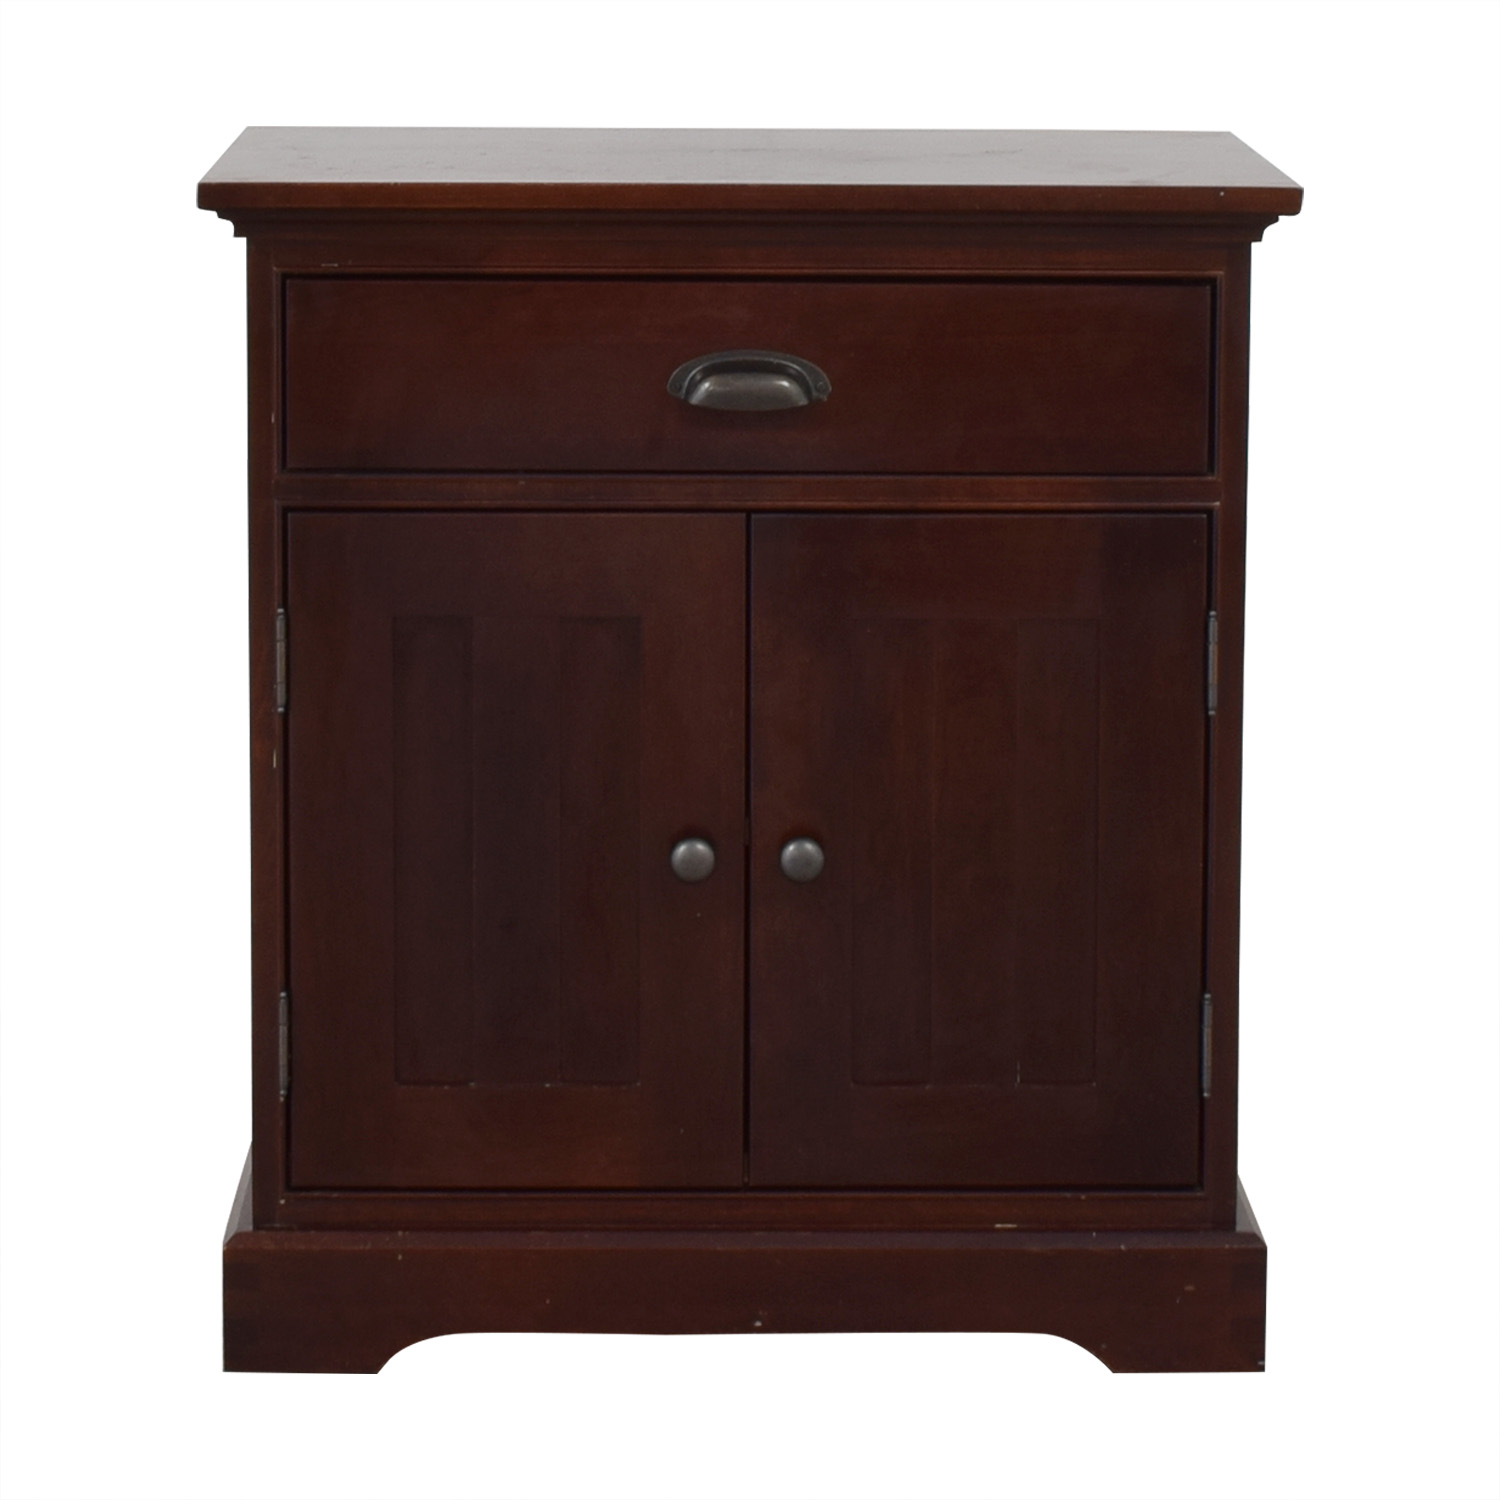 Restoration Hardware Restoration Hardware Marston Closed Nightstand on sale